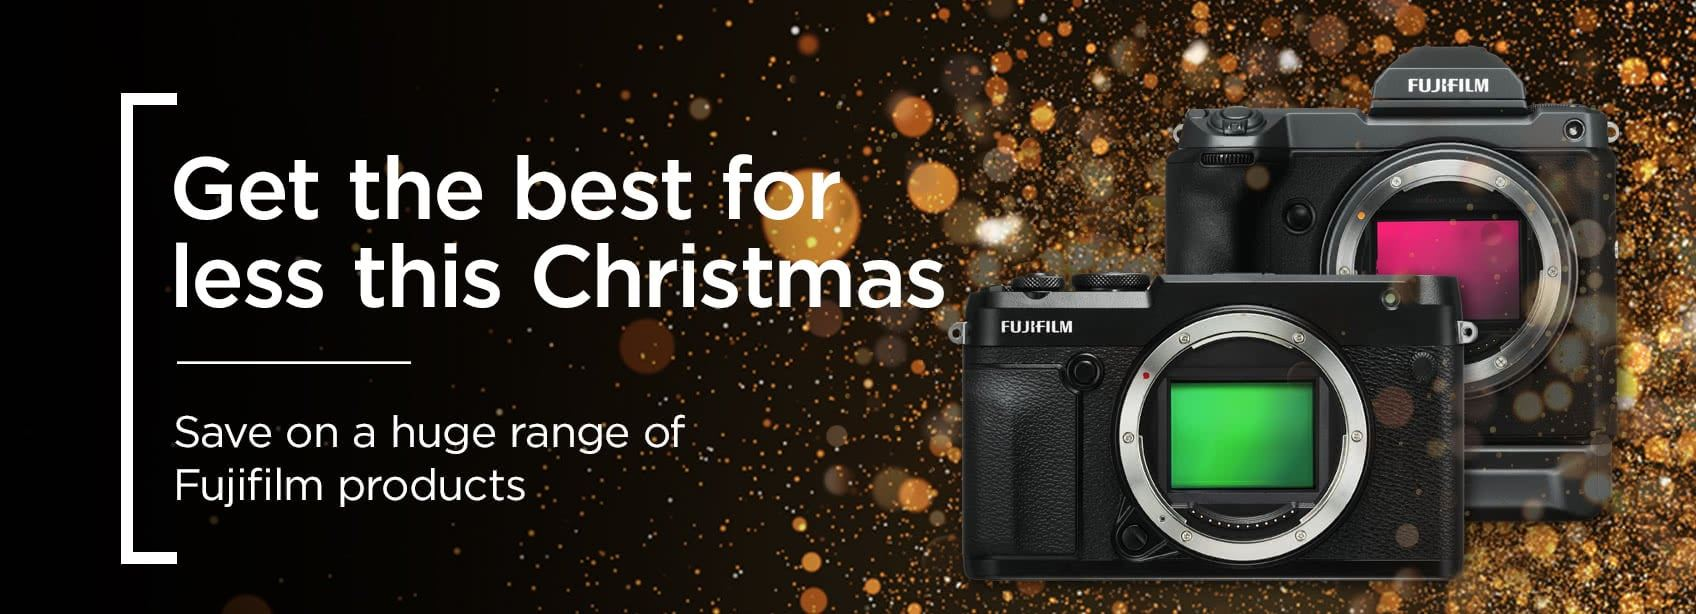 Get the best for less this Christmas - save on a huge range of Fujifilm products